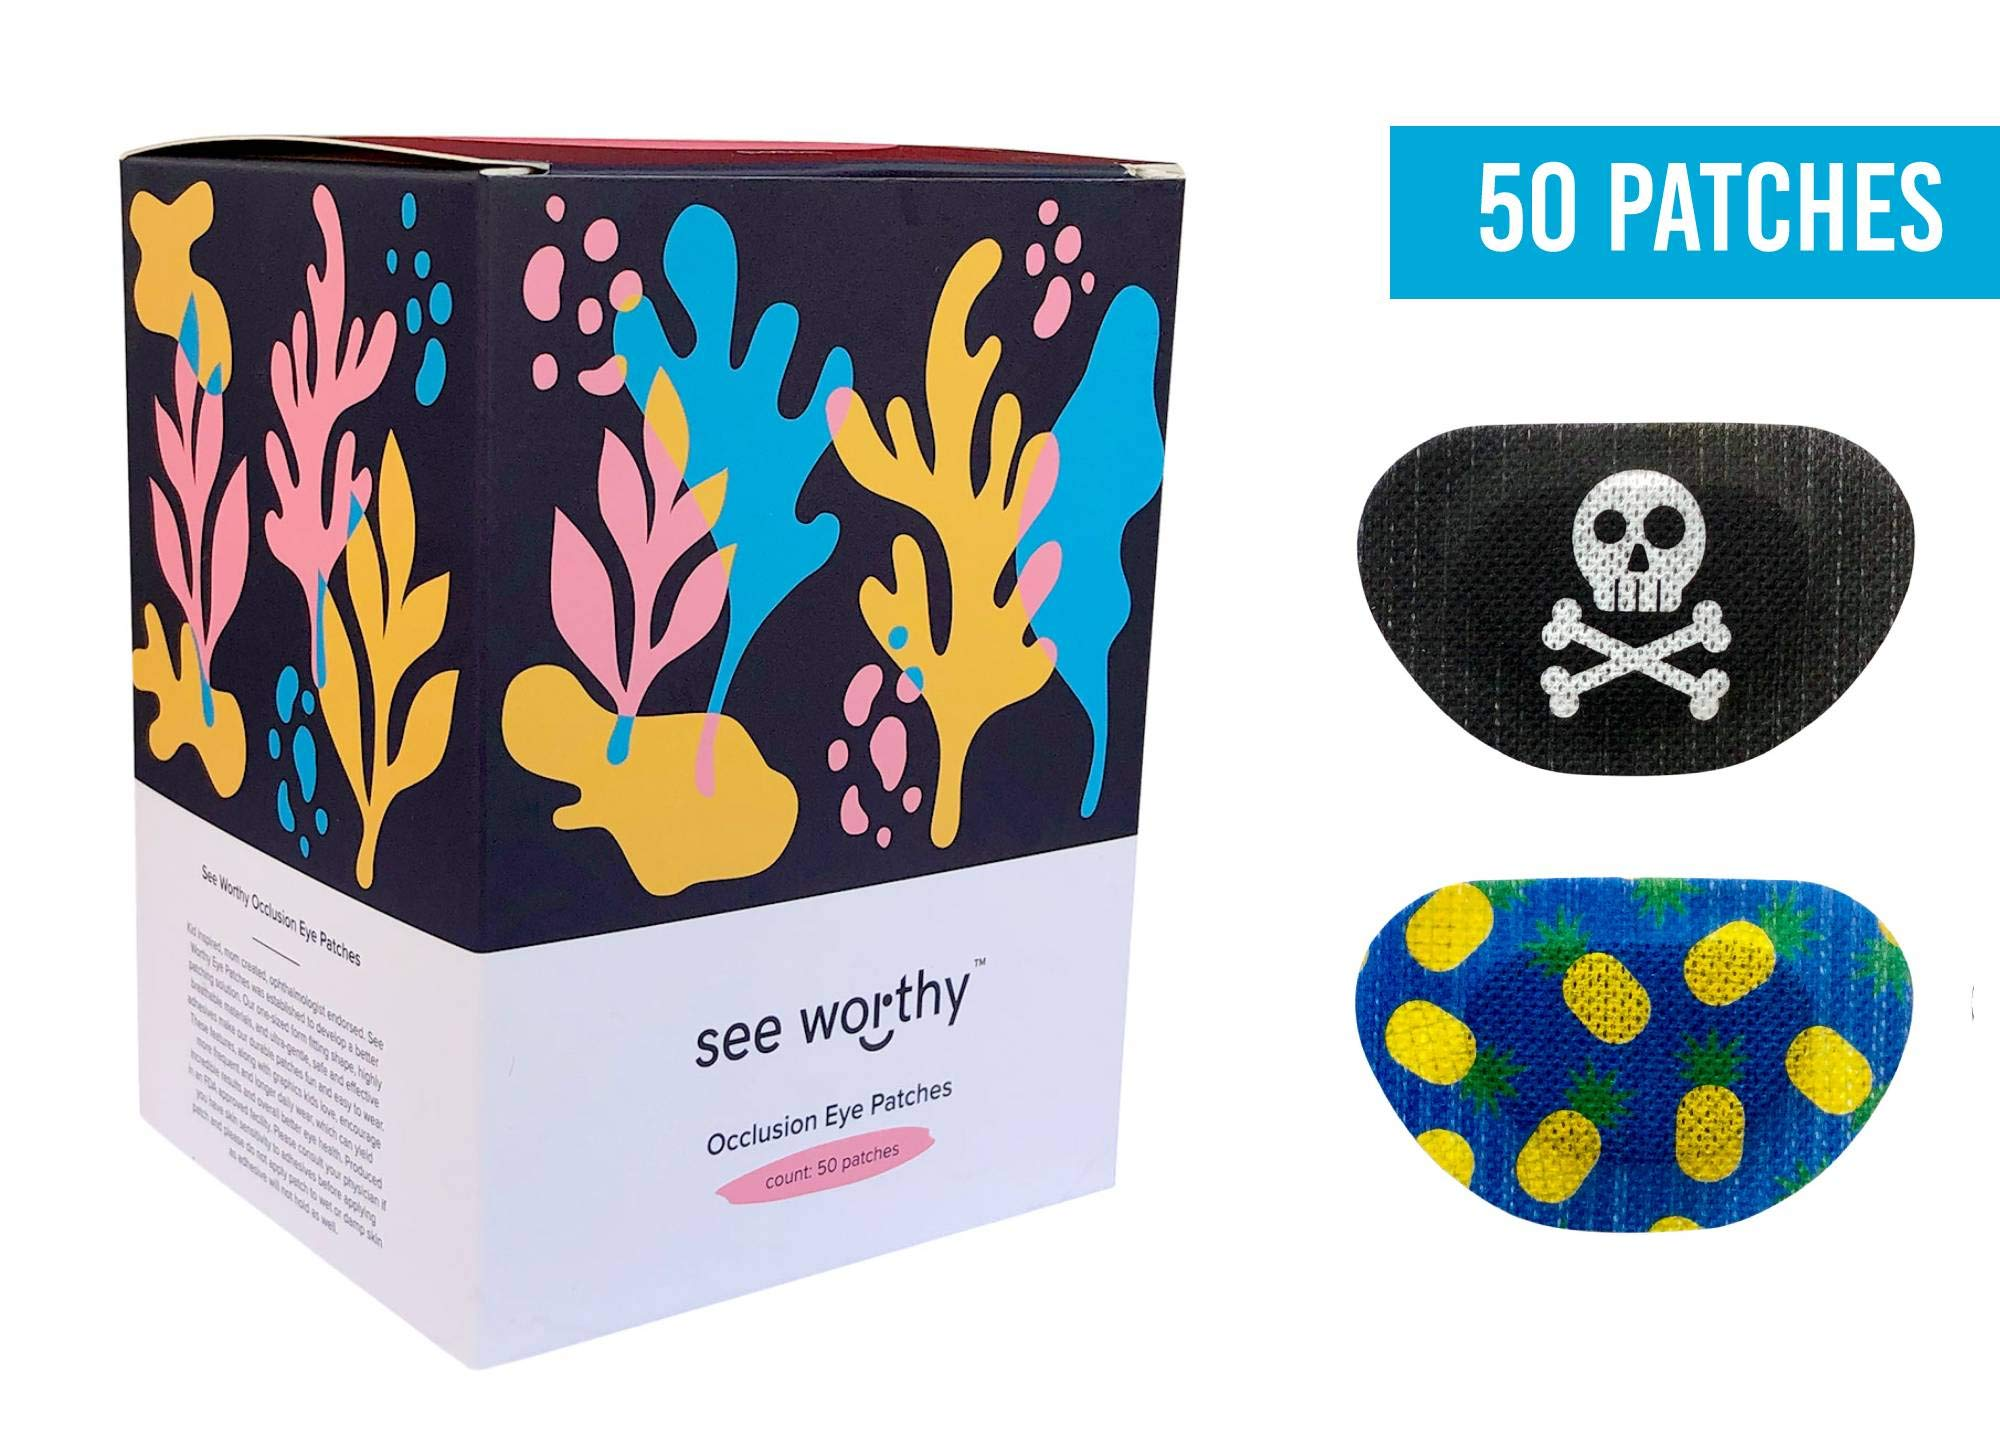 See Worthy (Pirate and Pineapple) Adhesive Kids Eye Patches, Innovative Shape, Smart Adhesive Technology, Breathable Material and Fun Designs, (50 per.